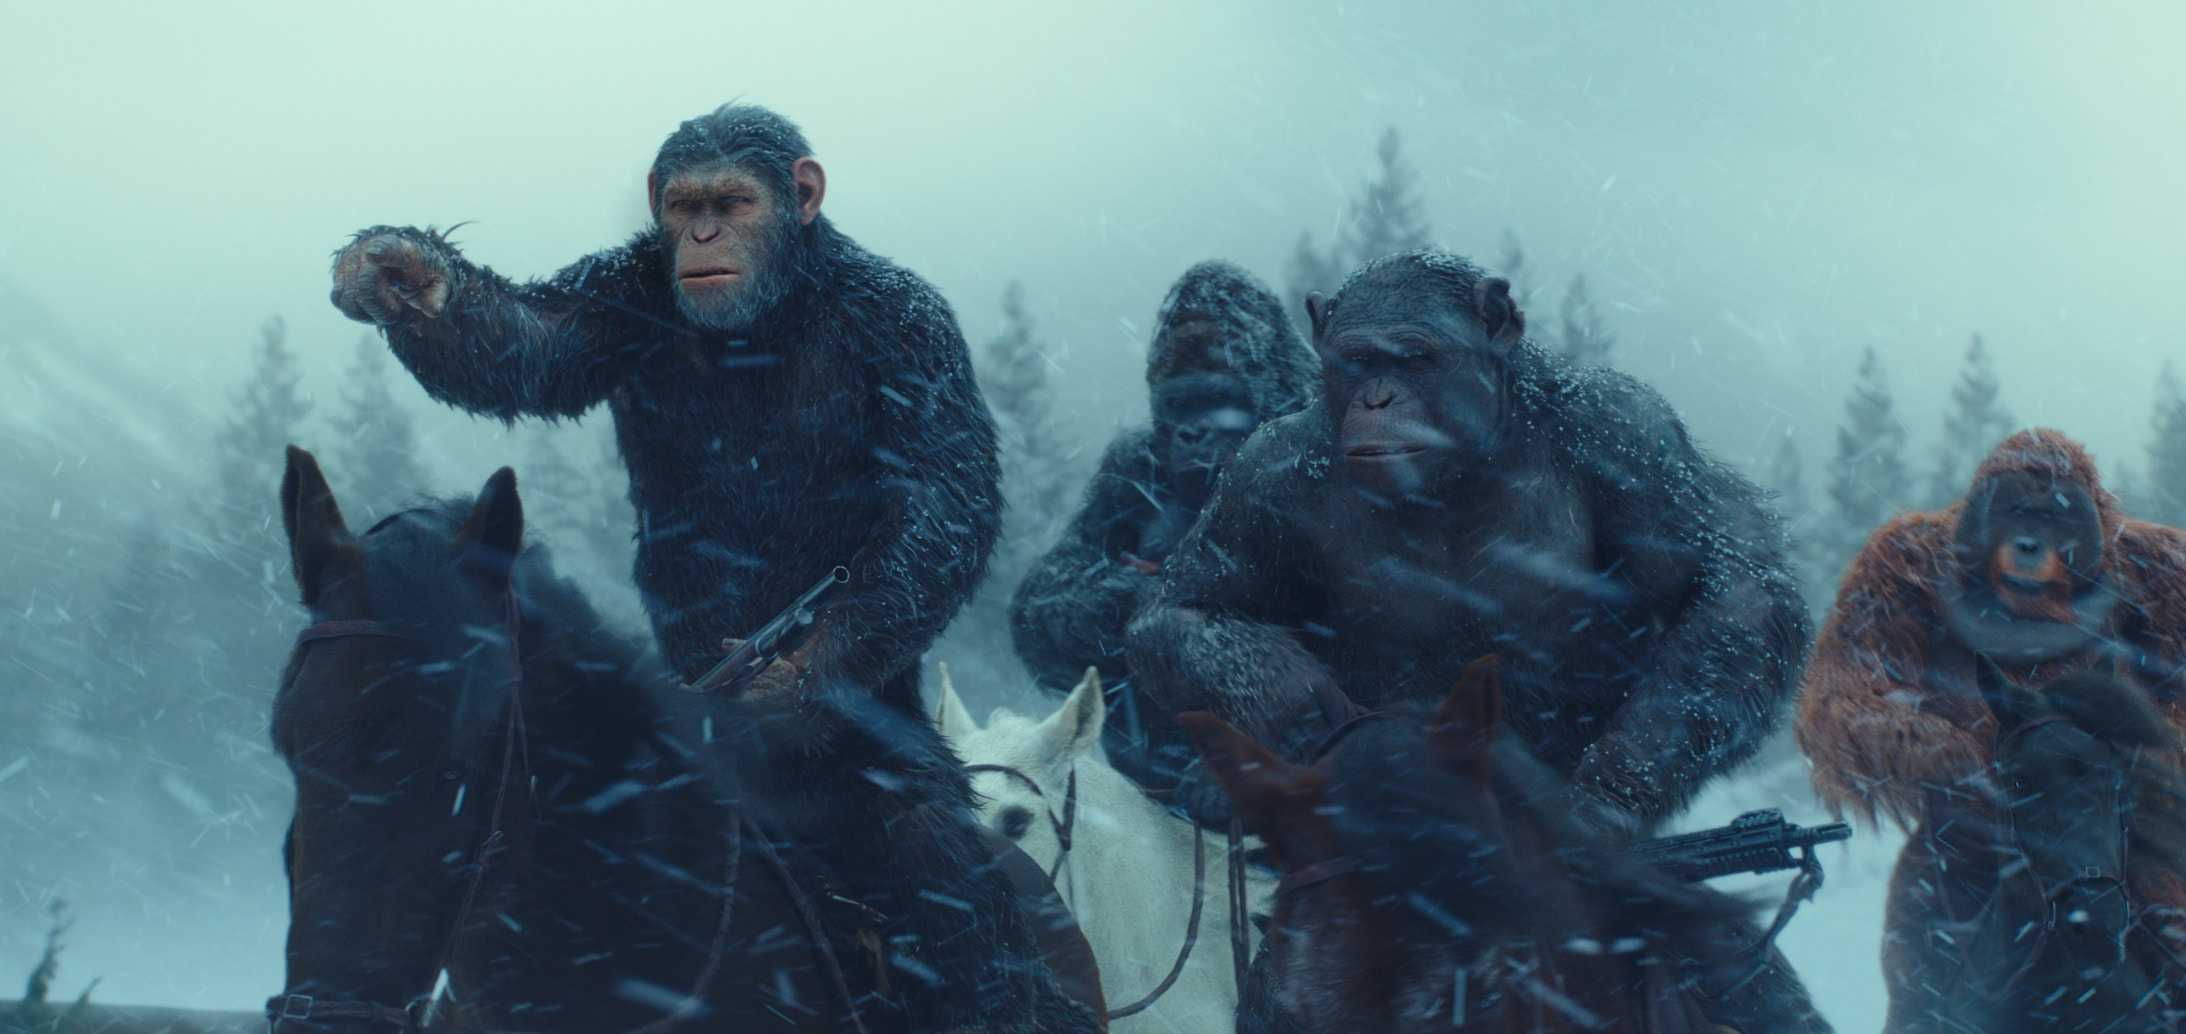 Apes is the first full Manuka project at Weta Digital